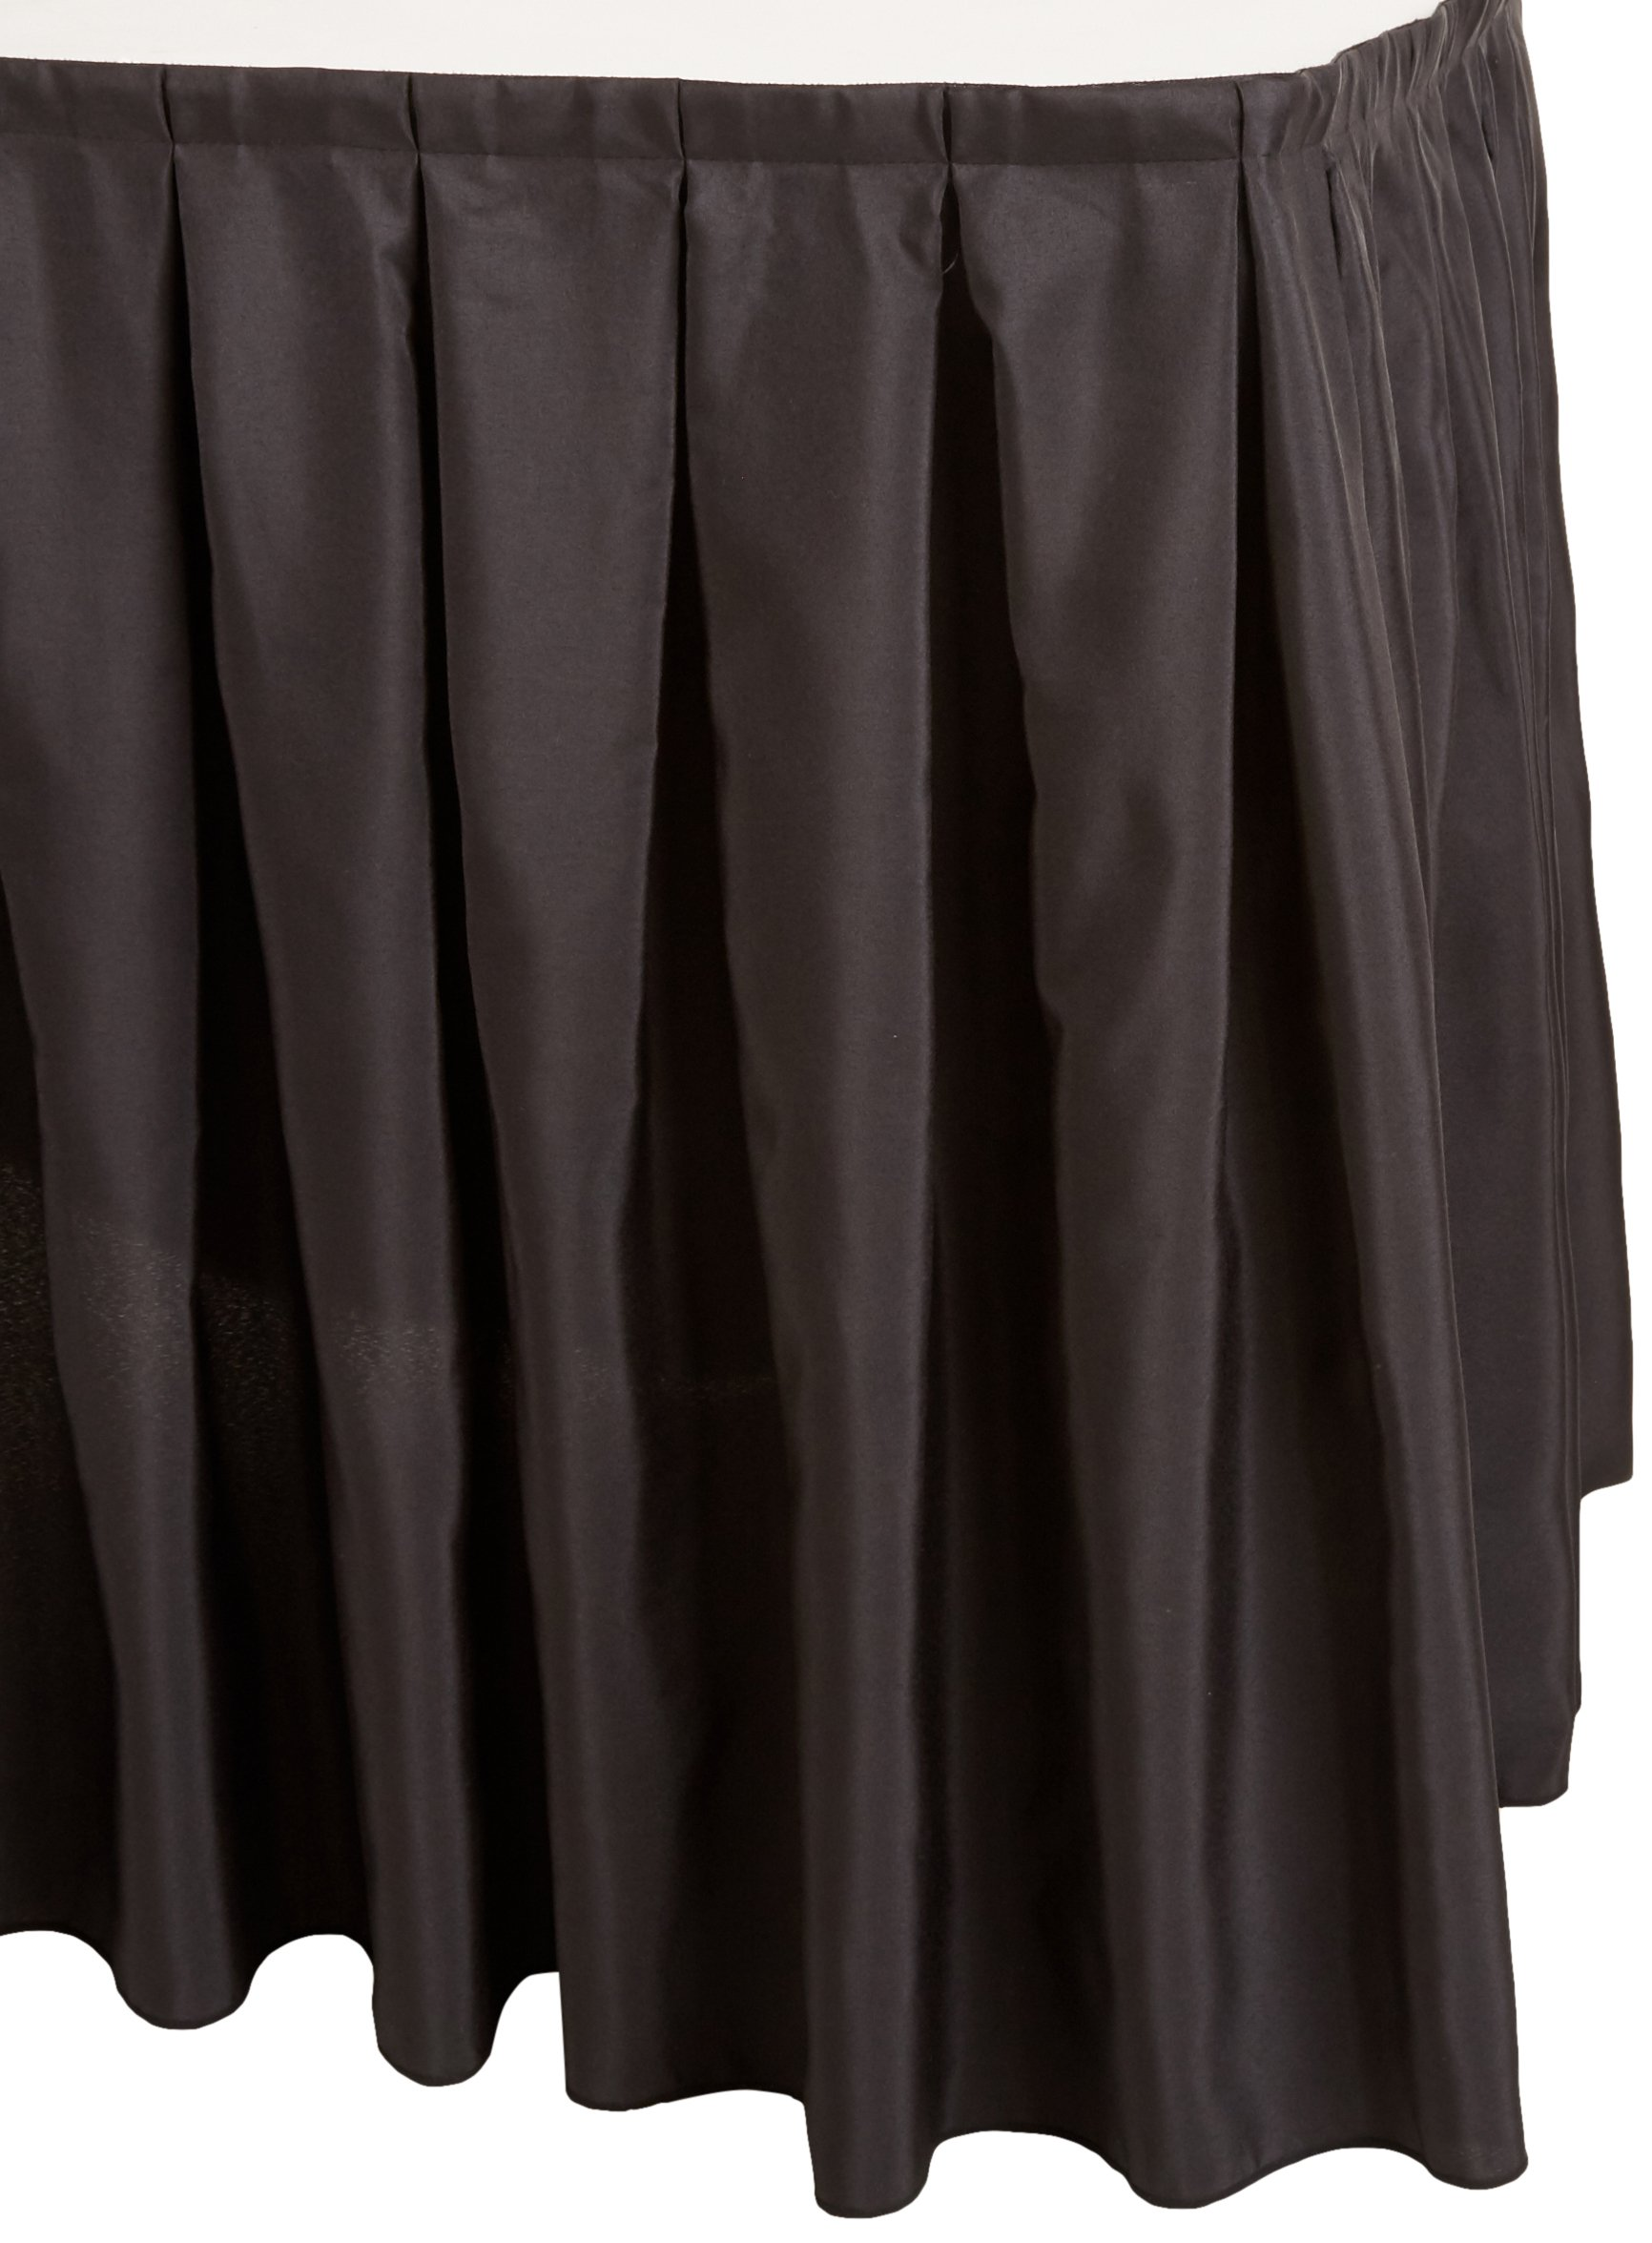 1d299b8102c8 Get Quotations · LinenTablecloth 14 ft. Accordion Pleat Polyester Table  Skirt Black